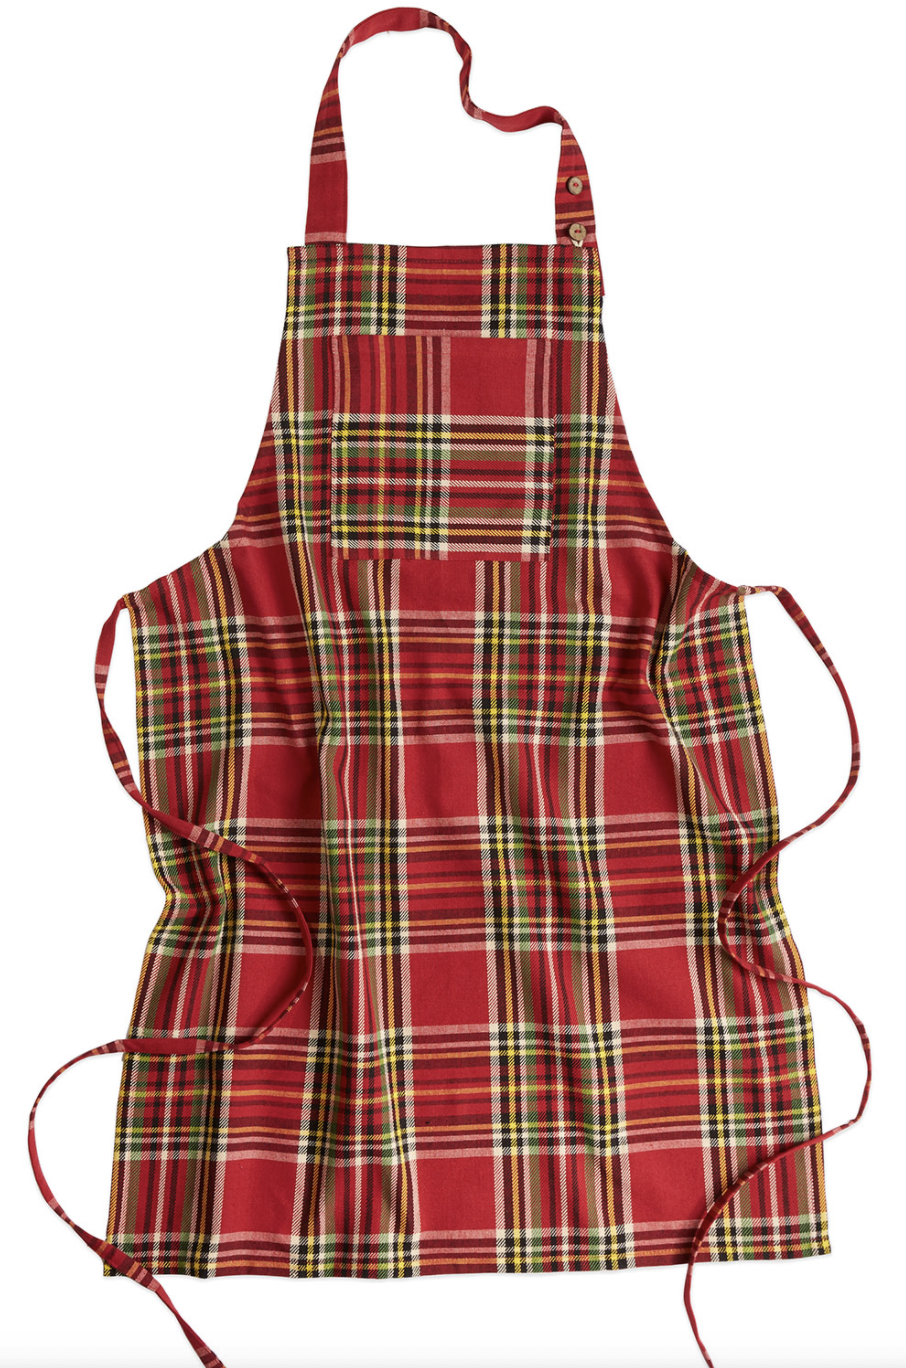 Fireside Tartan Plaid Apron by April Cornell